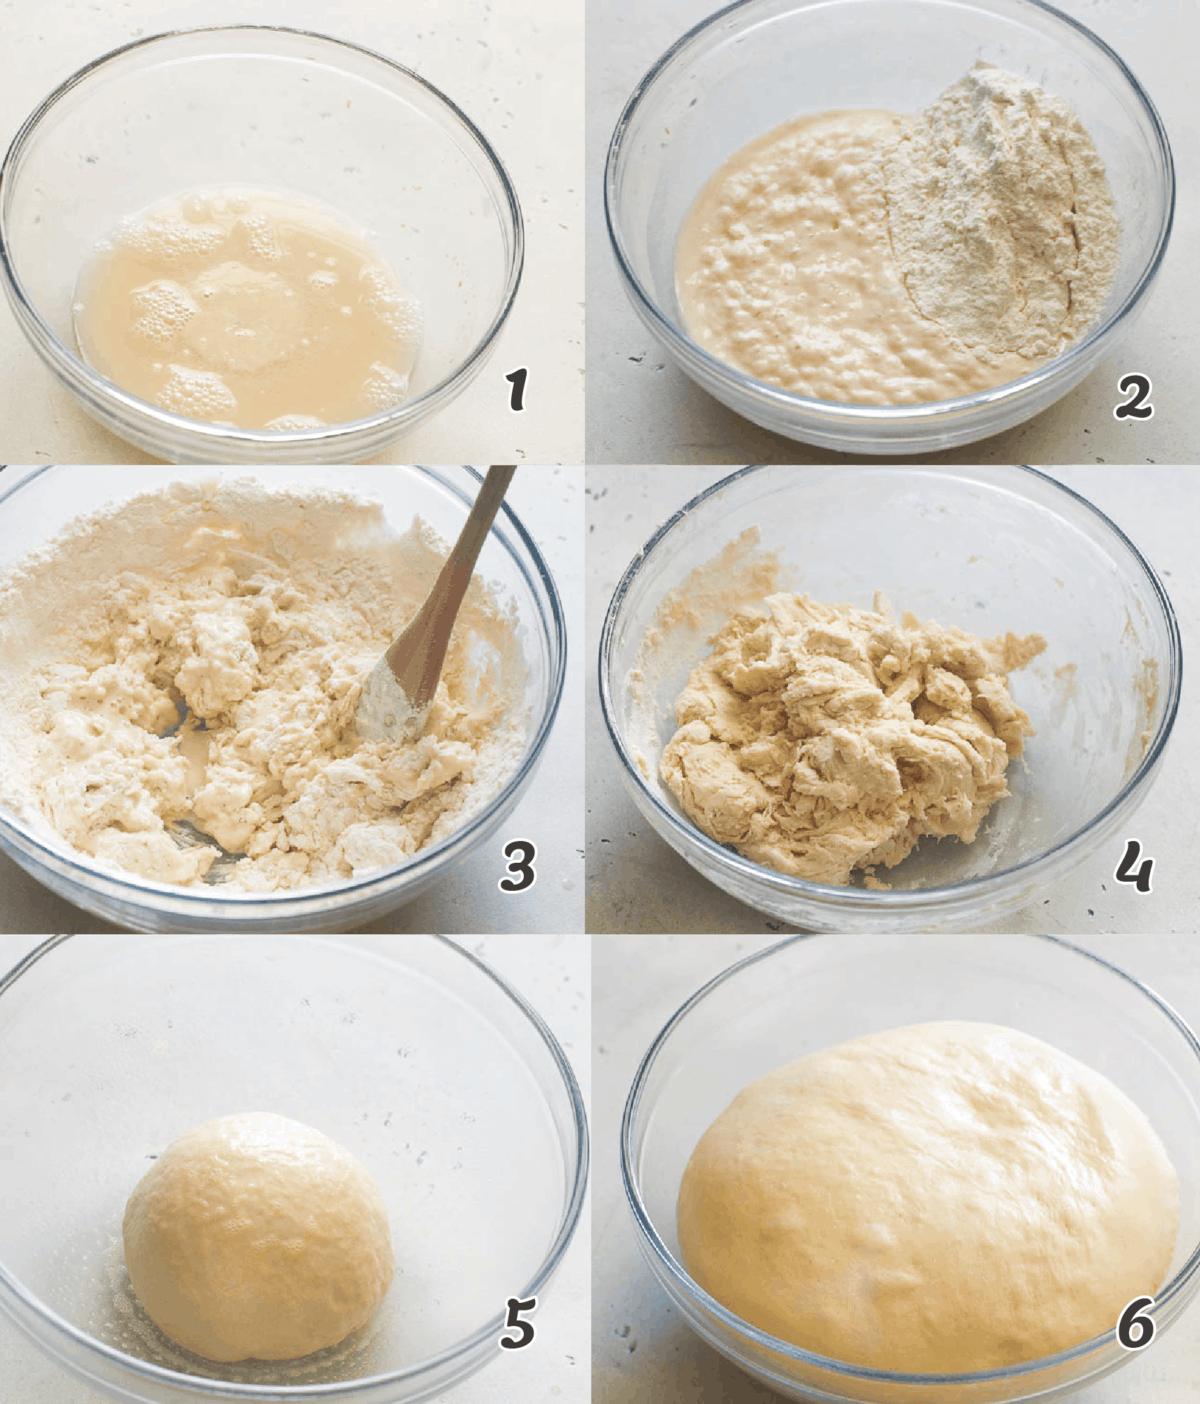 Pita Bread Dough